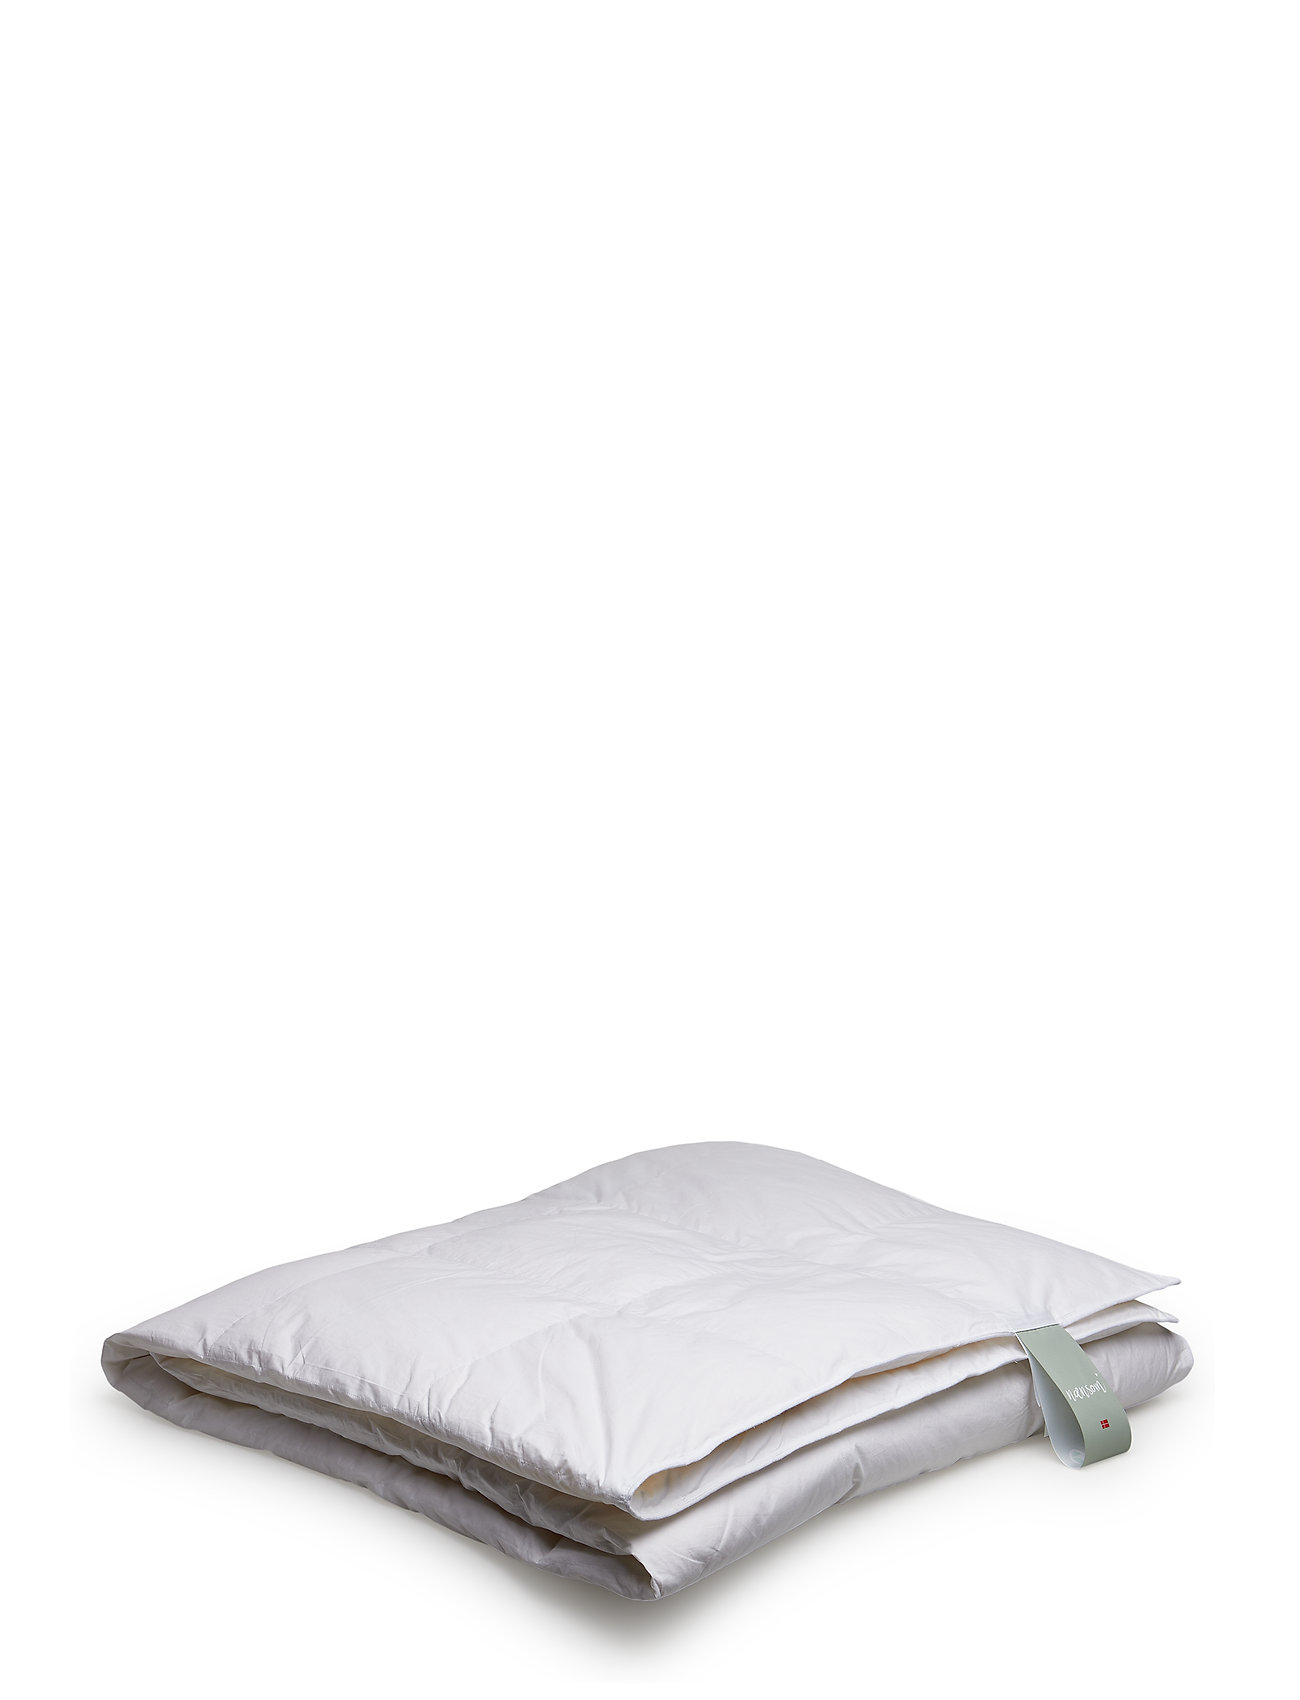 Quilts of Denmark Nænsom Medium Down Duvet - WHITE